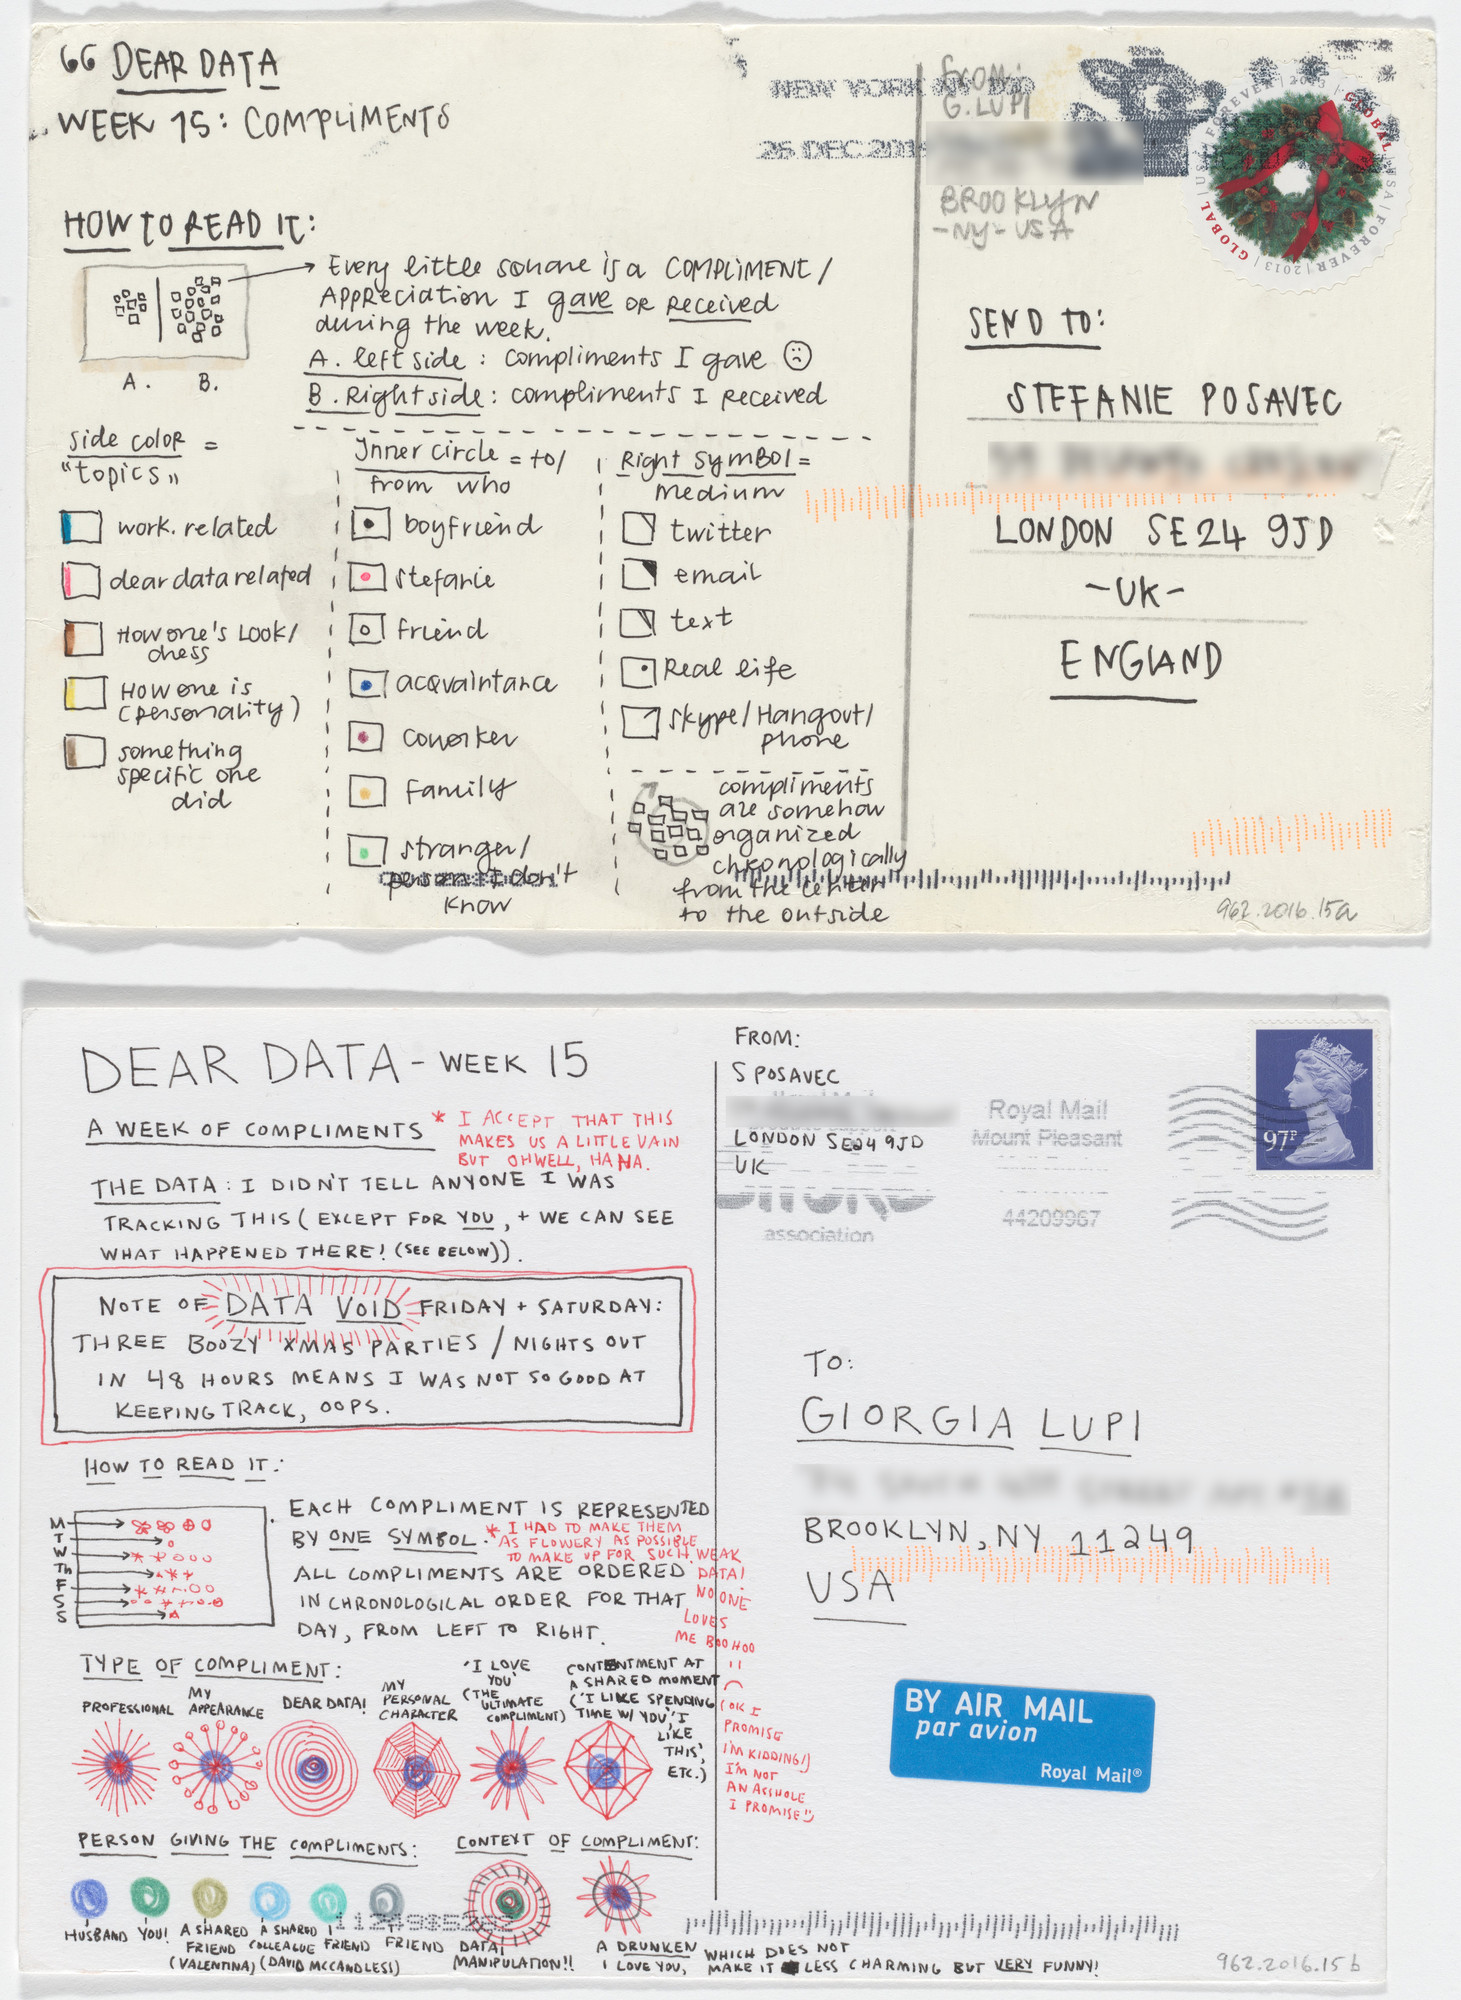 Giorgia Lupi, Stefanie Posavec. Dear Data: Week 15 (Compliments /  A Week of Compliments). 2014